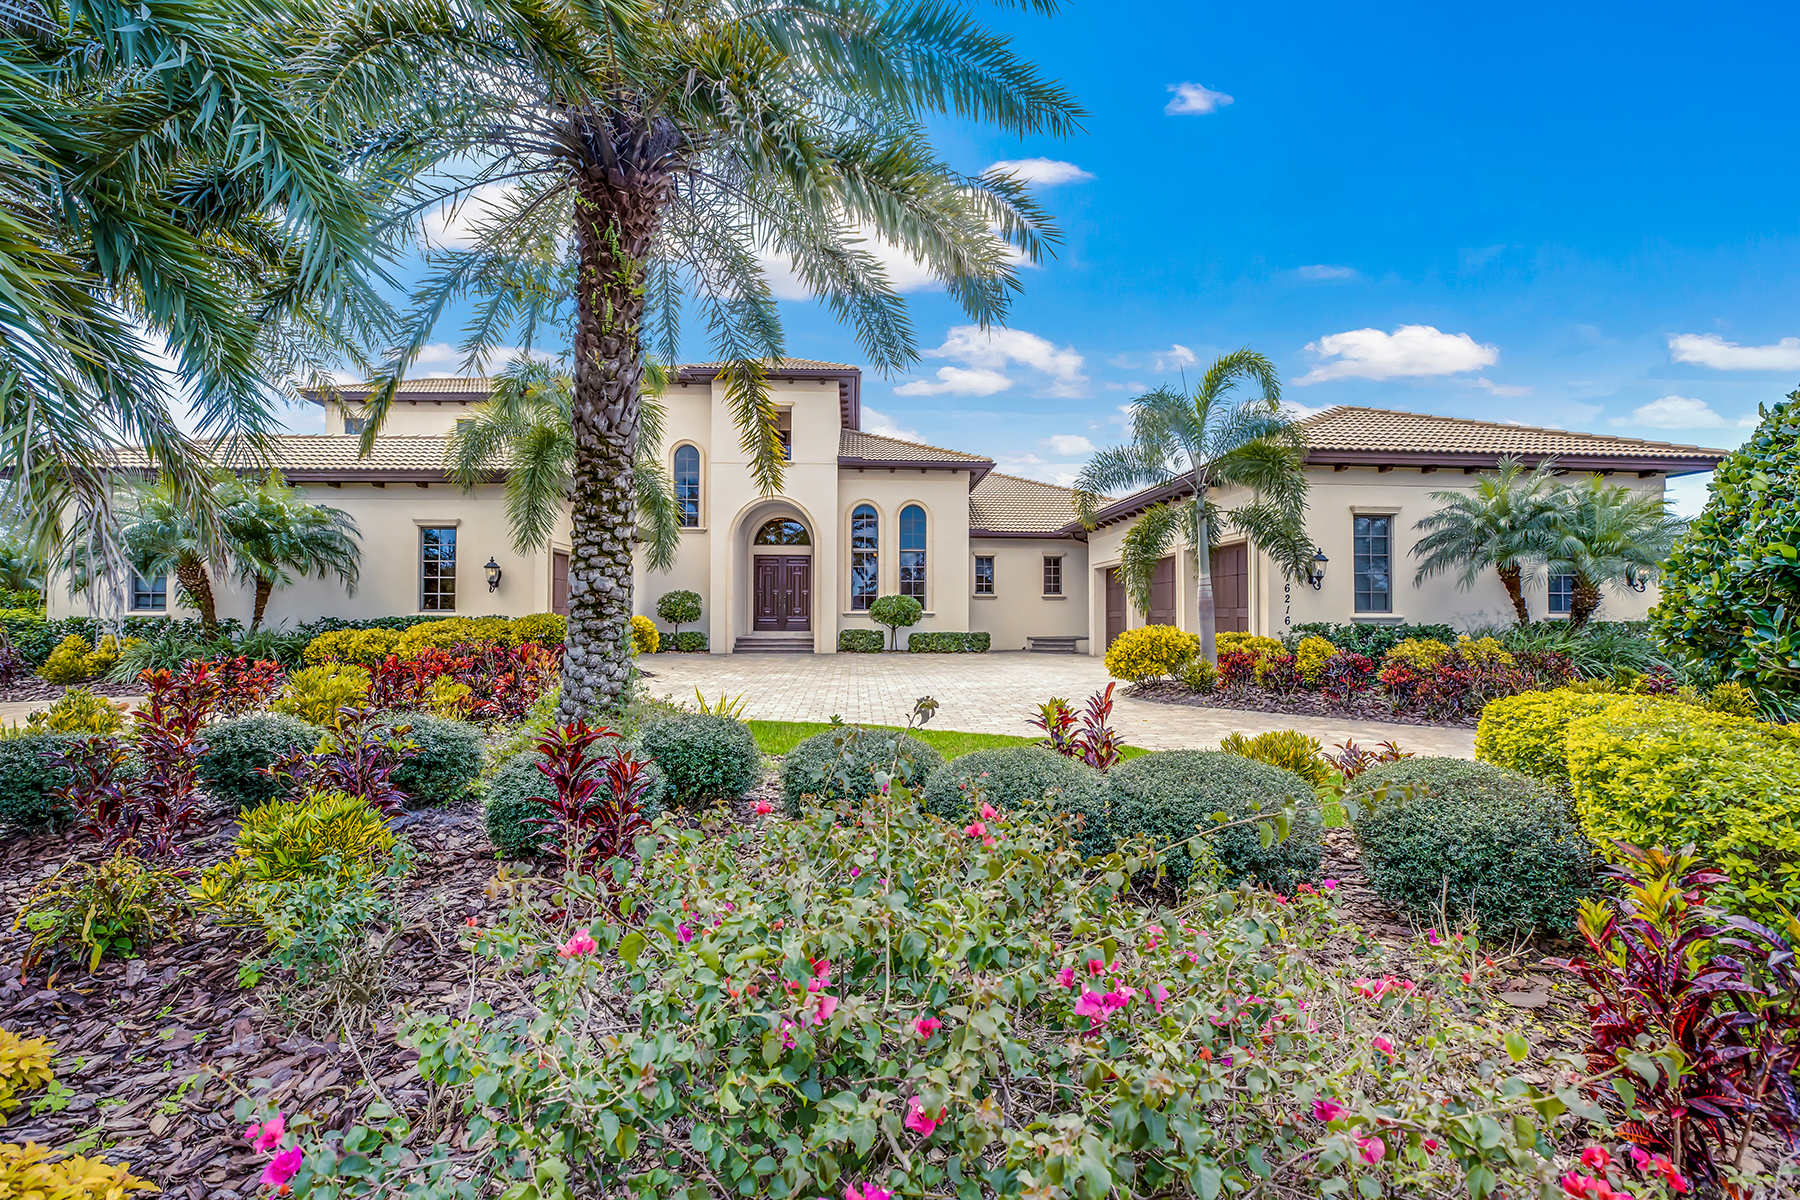 Single Family Homes for Active at THE LAKE CLUB 16216 Clearlake Ave Lakewood Ranch, Florida 34202 United States